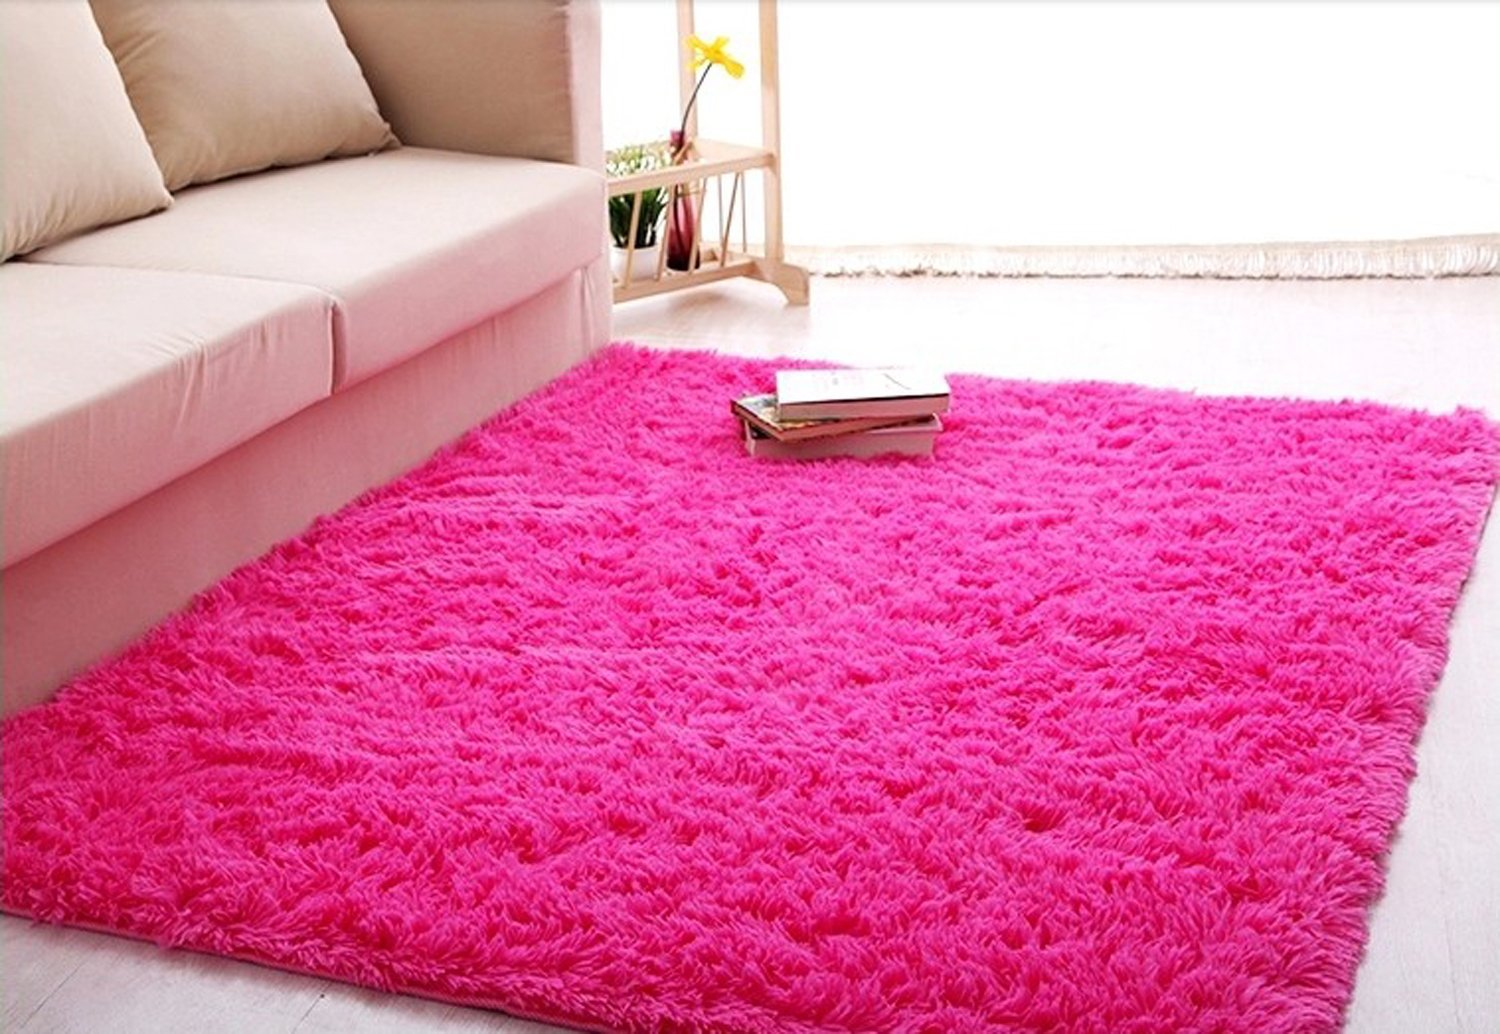 Amazing How to Choose the Best Baby Girl Nursery Area Rugs rugs for girls bedroom